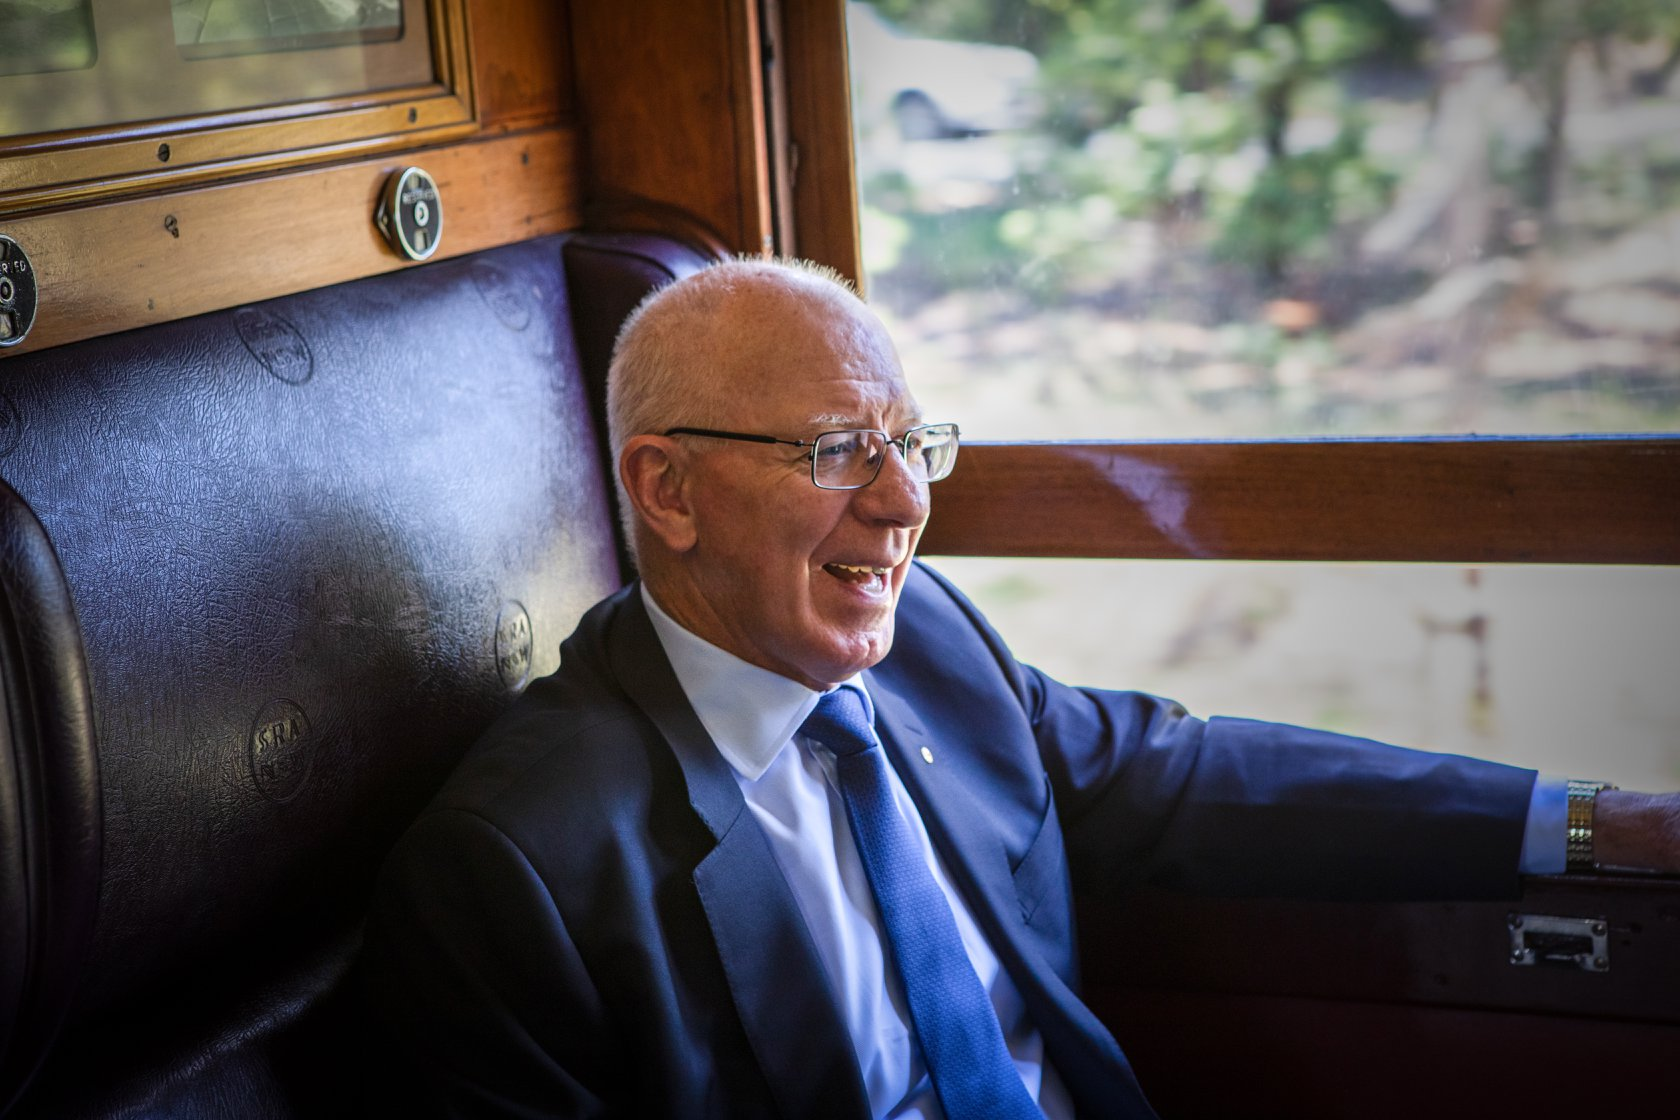 His Excellency enjoys a steam train ride along the loop line. -Trys Eddy Photos